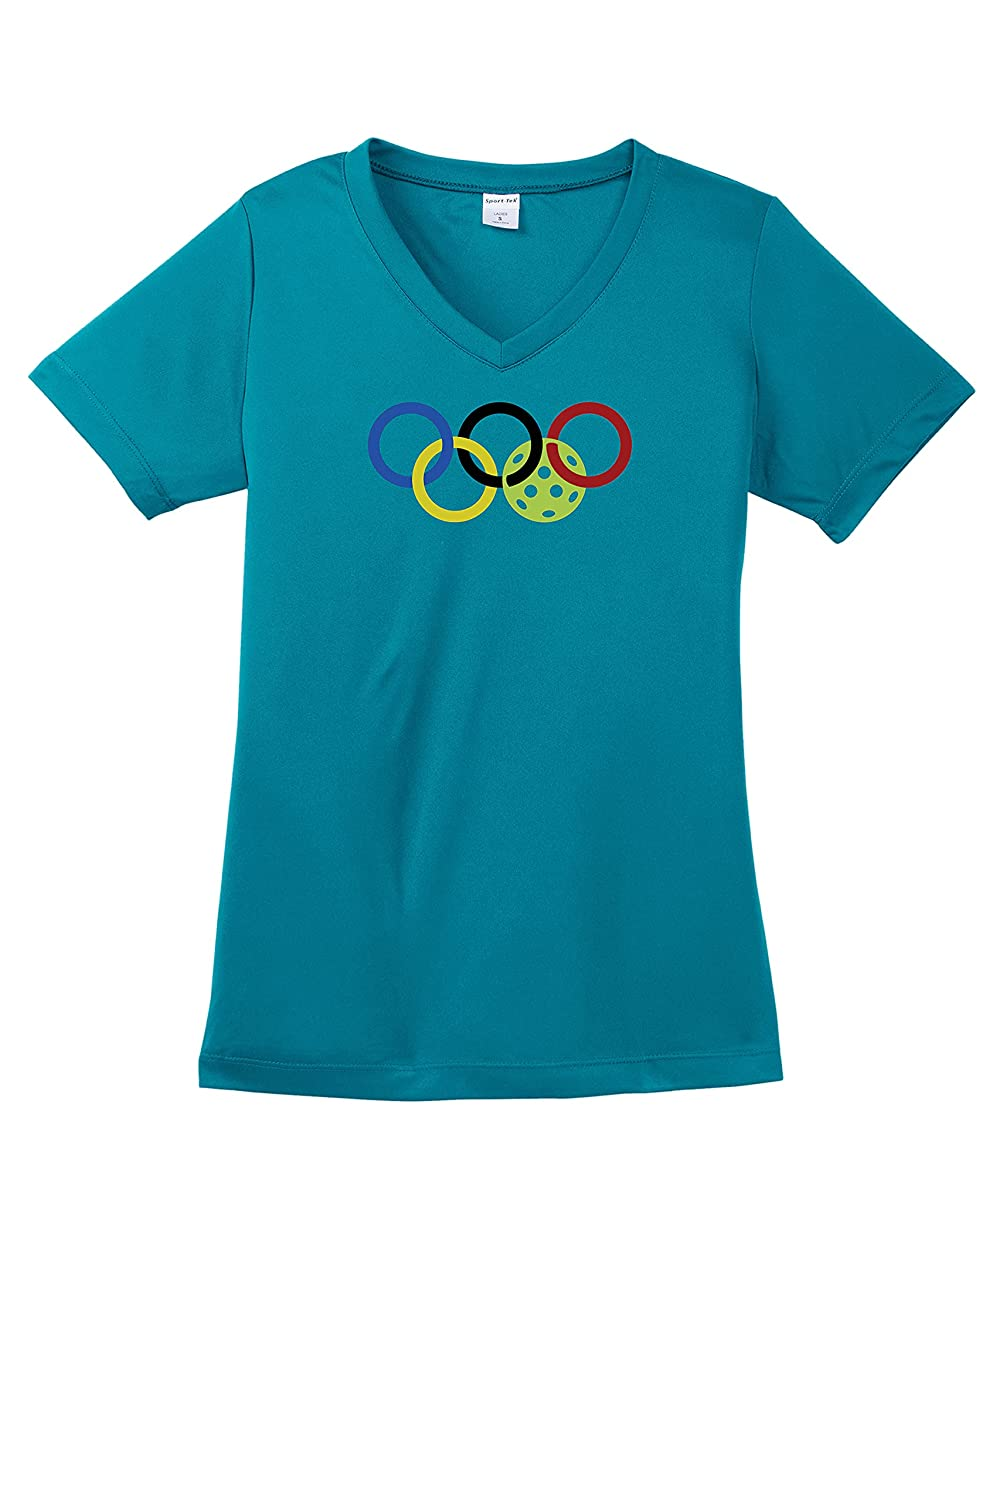 Arlington Mall Ladies Olympic Pickleball T-Shirt Performance Sale special price